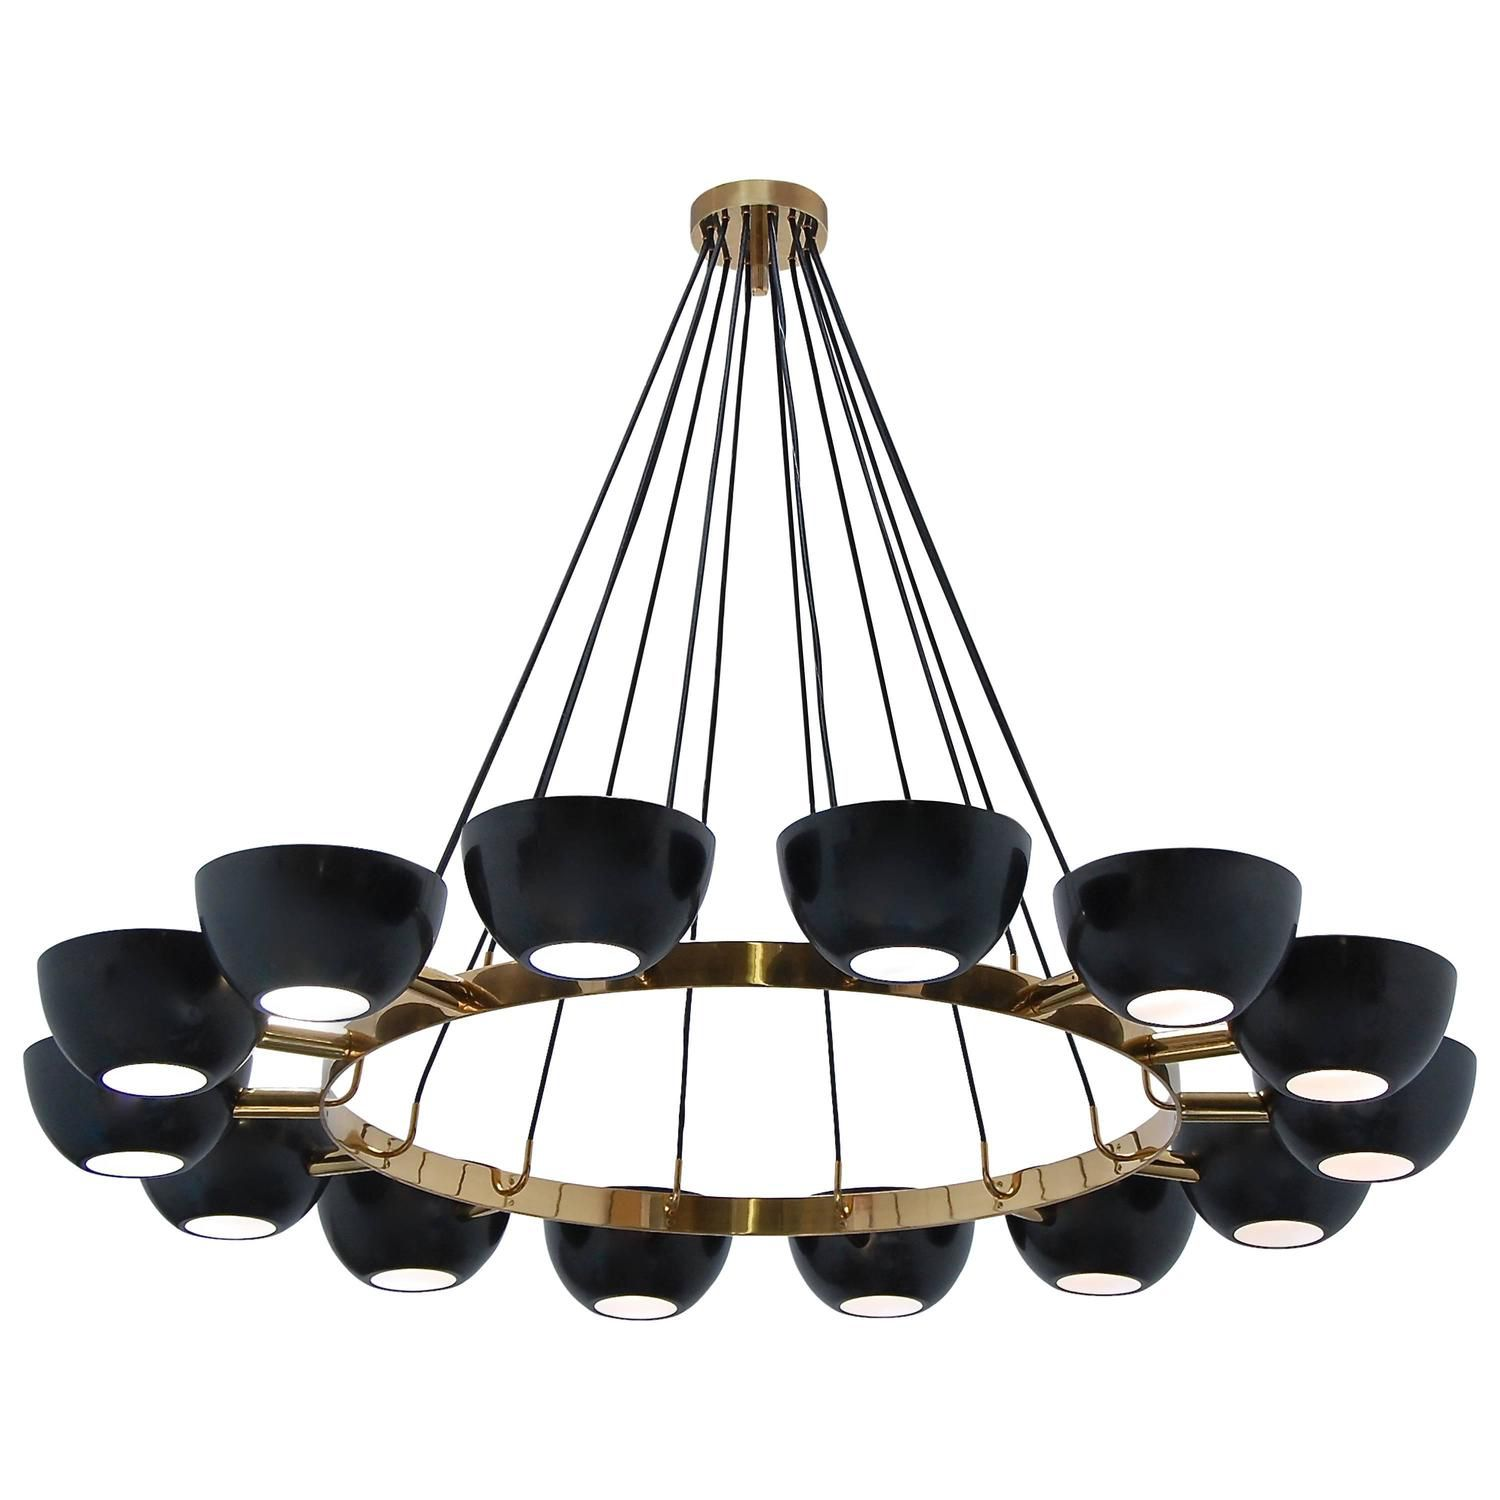 Lufatti chandelier see more antique and modern chandeliers and lufatti chandelier see more antique and modern chandeliers and pendants at https mozeypictures Choice Image